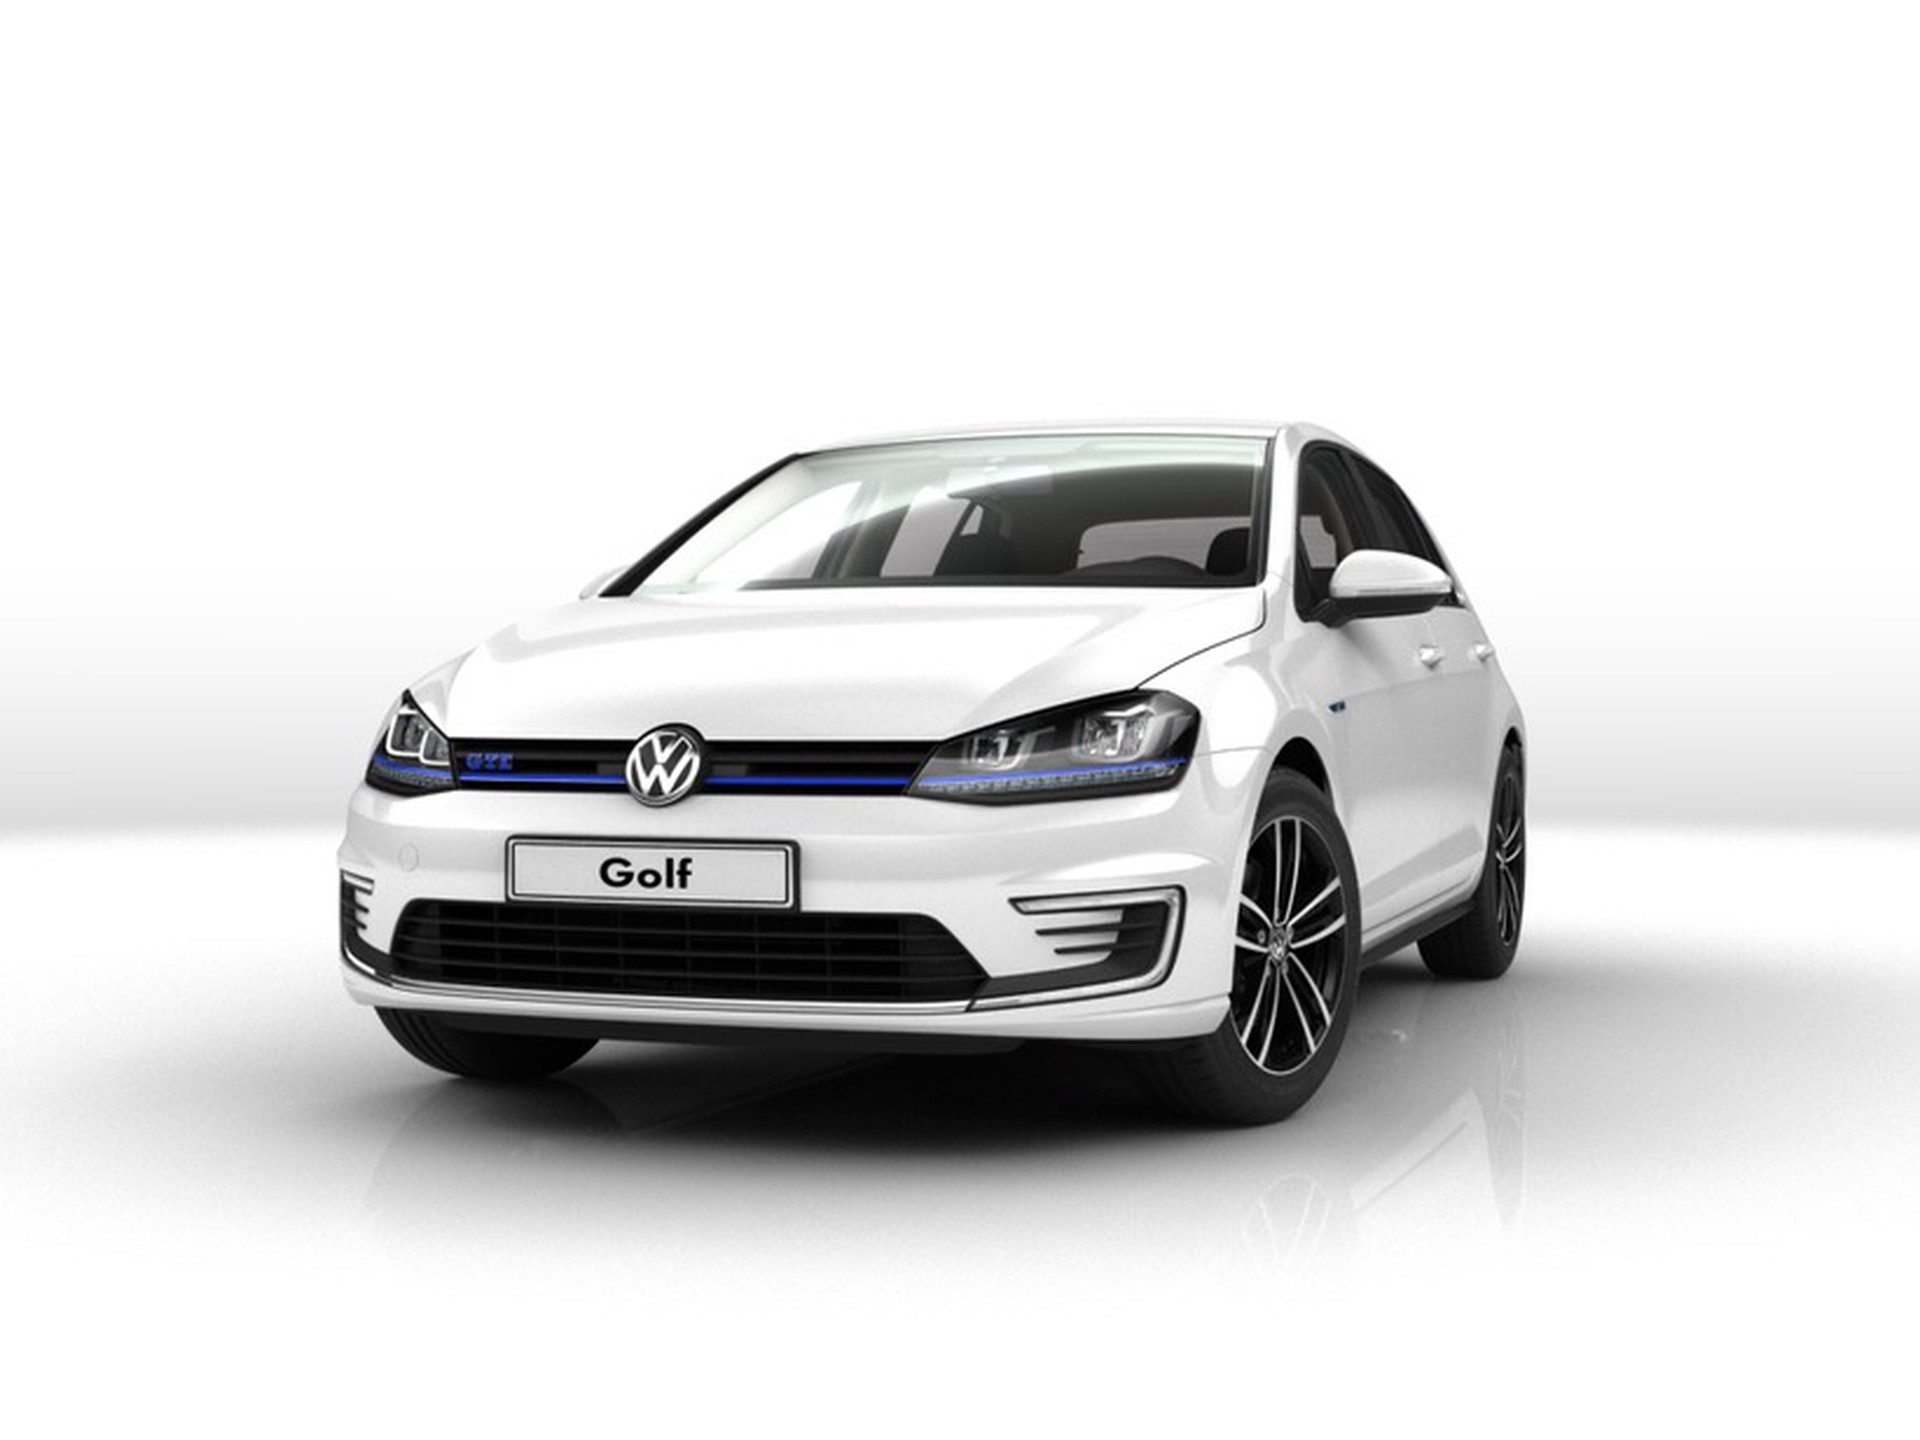 Volkswagen-Golf-1.4 TSI GTE Full Operational lease-nieuweautodeal.nl